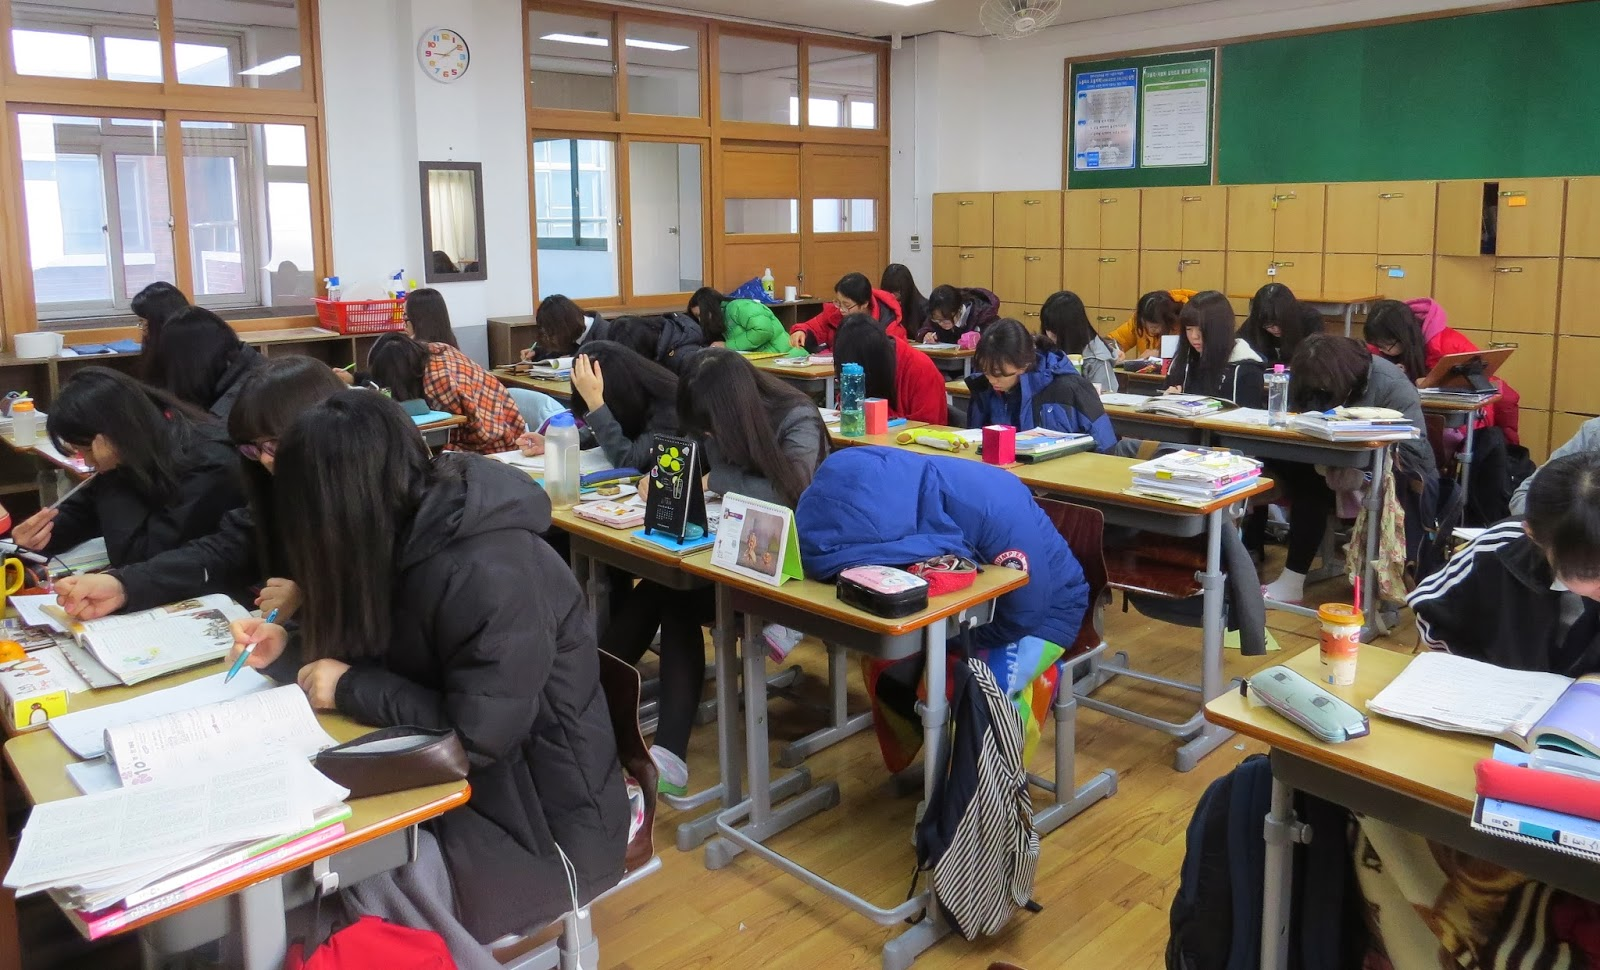 Elaine's World: Korean High School Life as Seen by Elaine